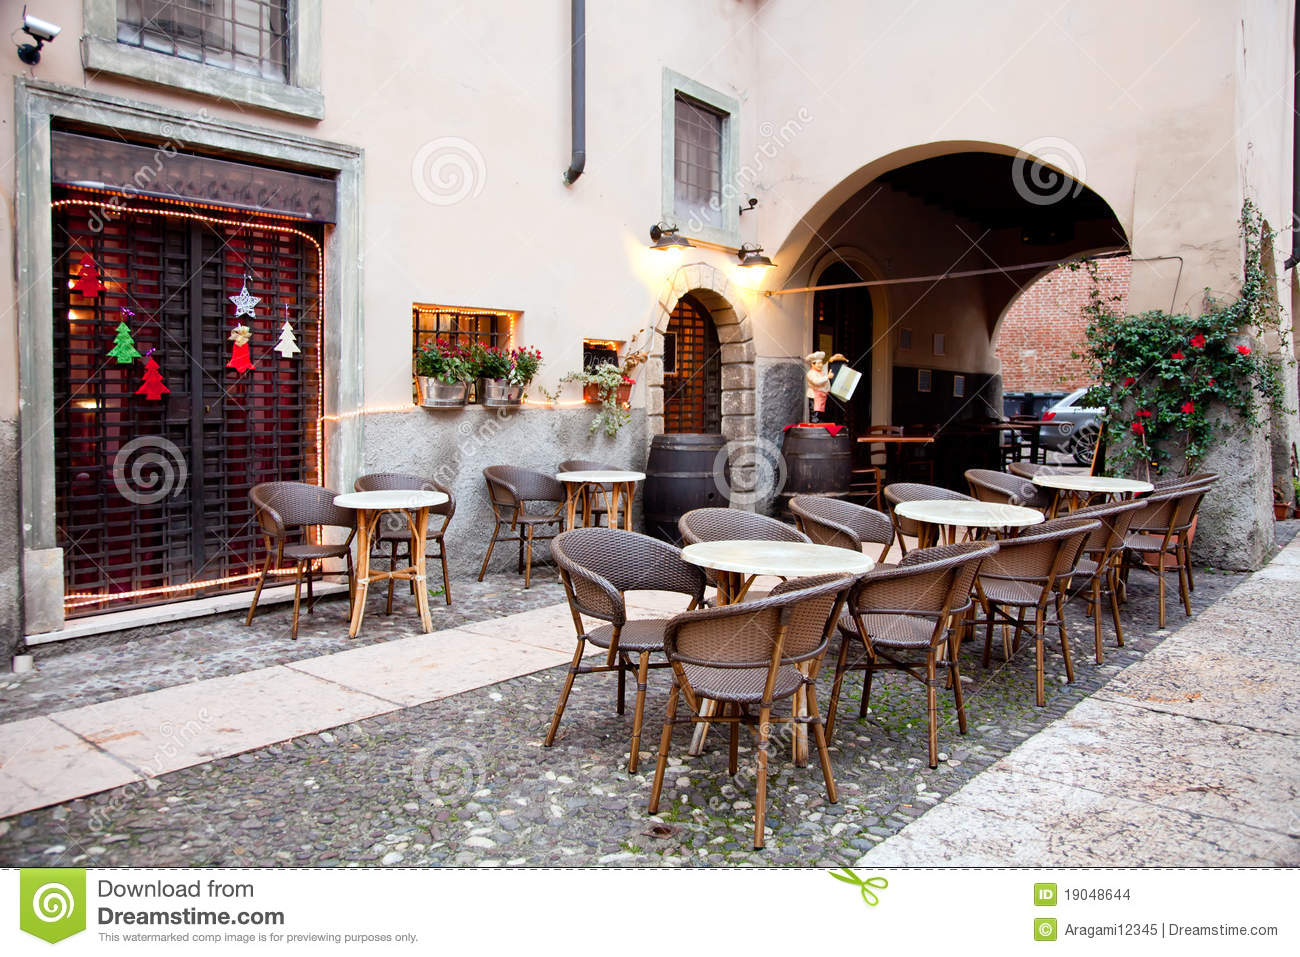 chair for dining table red tufted street restaurant in verona, italy stock photo - image: 19048644